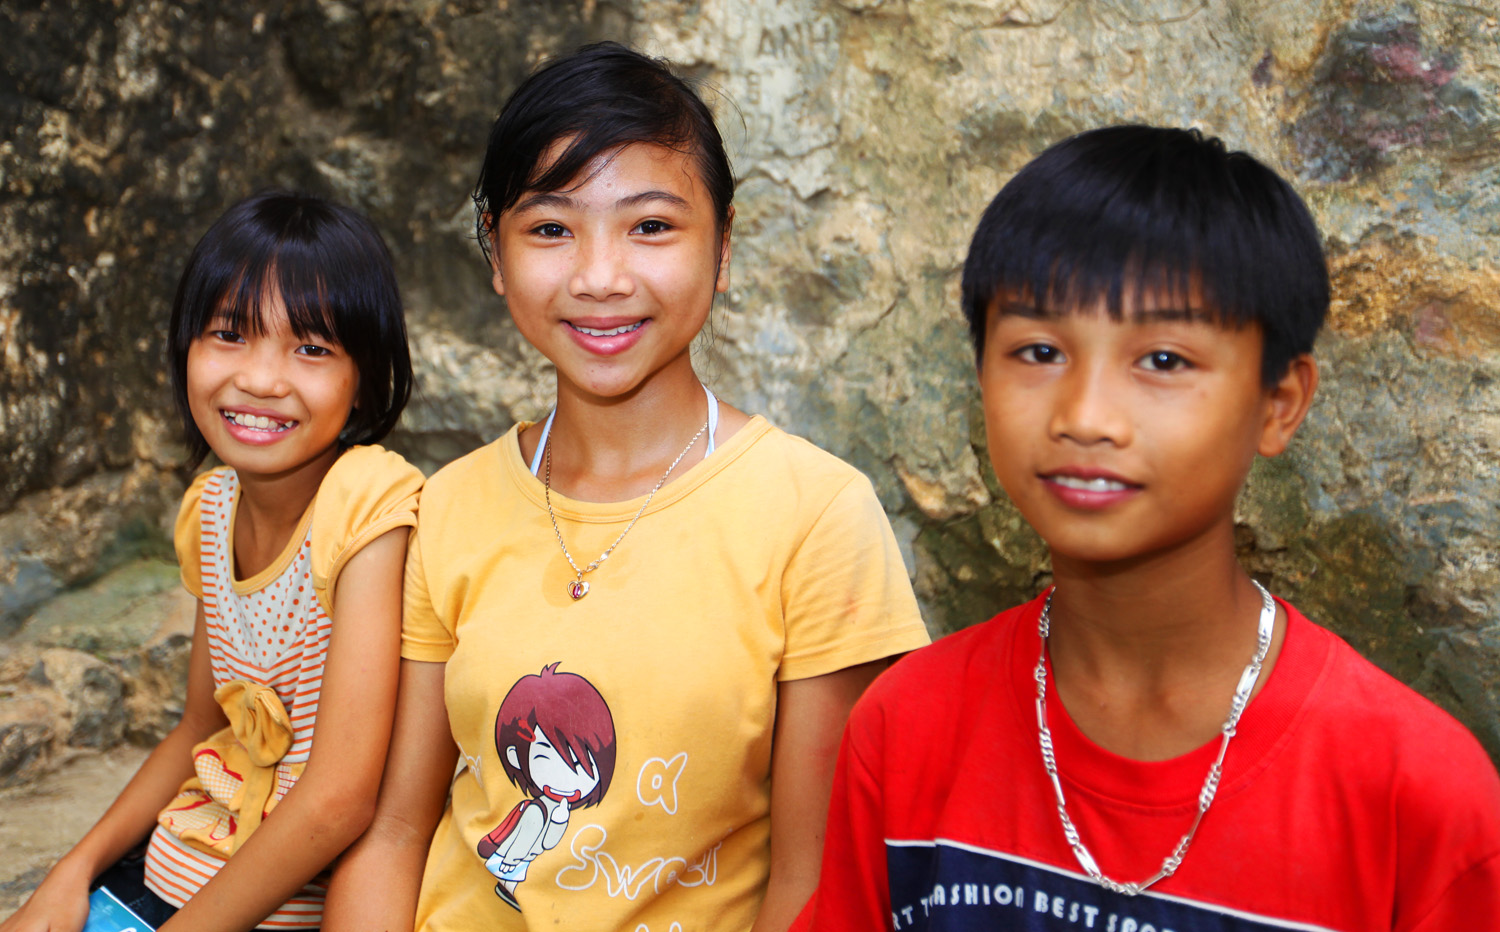 Children in Ninh Binh